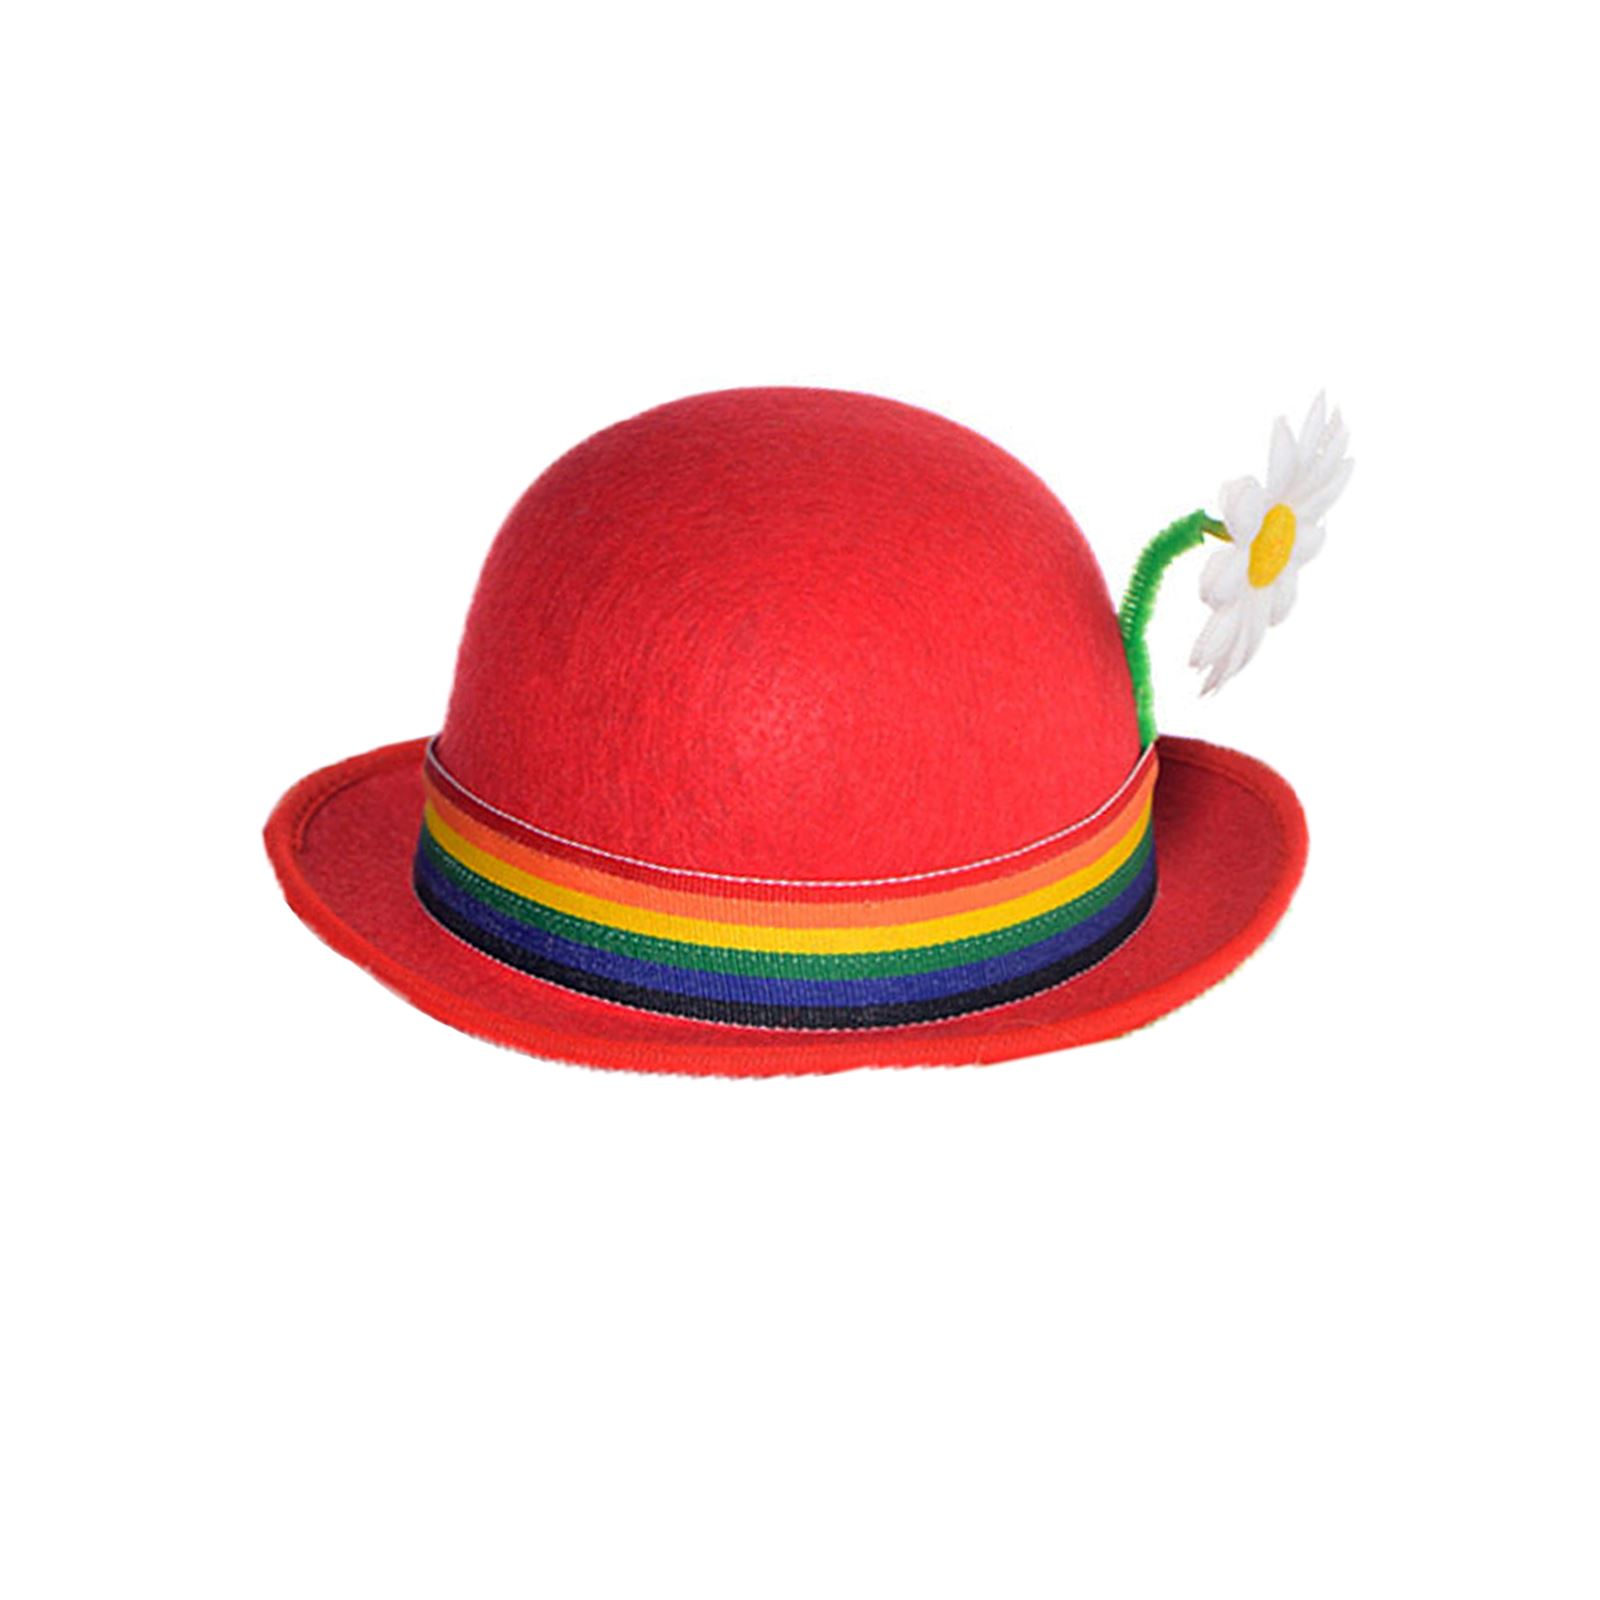 Funny Hat Caps Beanies Skullies Fedoras Berets Dress: Adults Mens Womens Circus Clown Funny Derby Mini Hat Stag